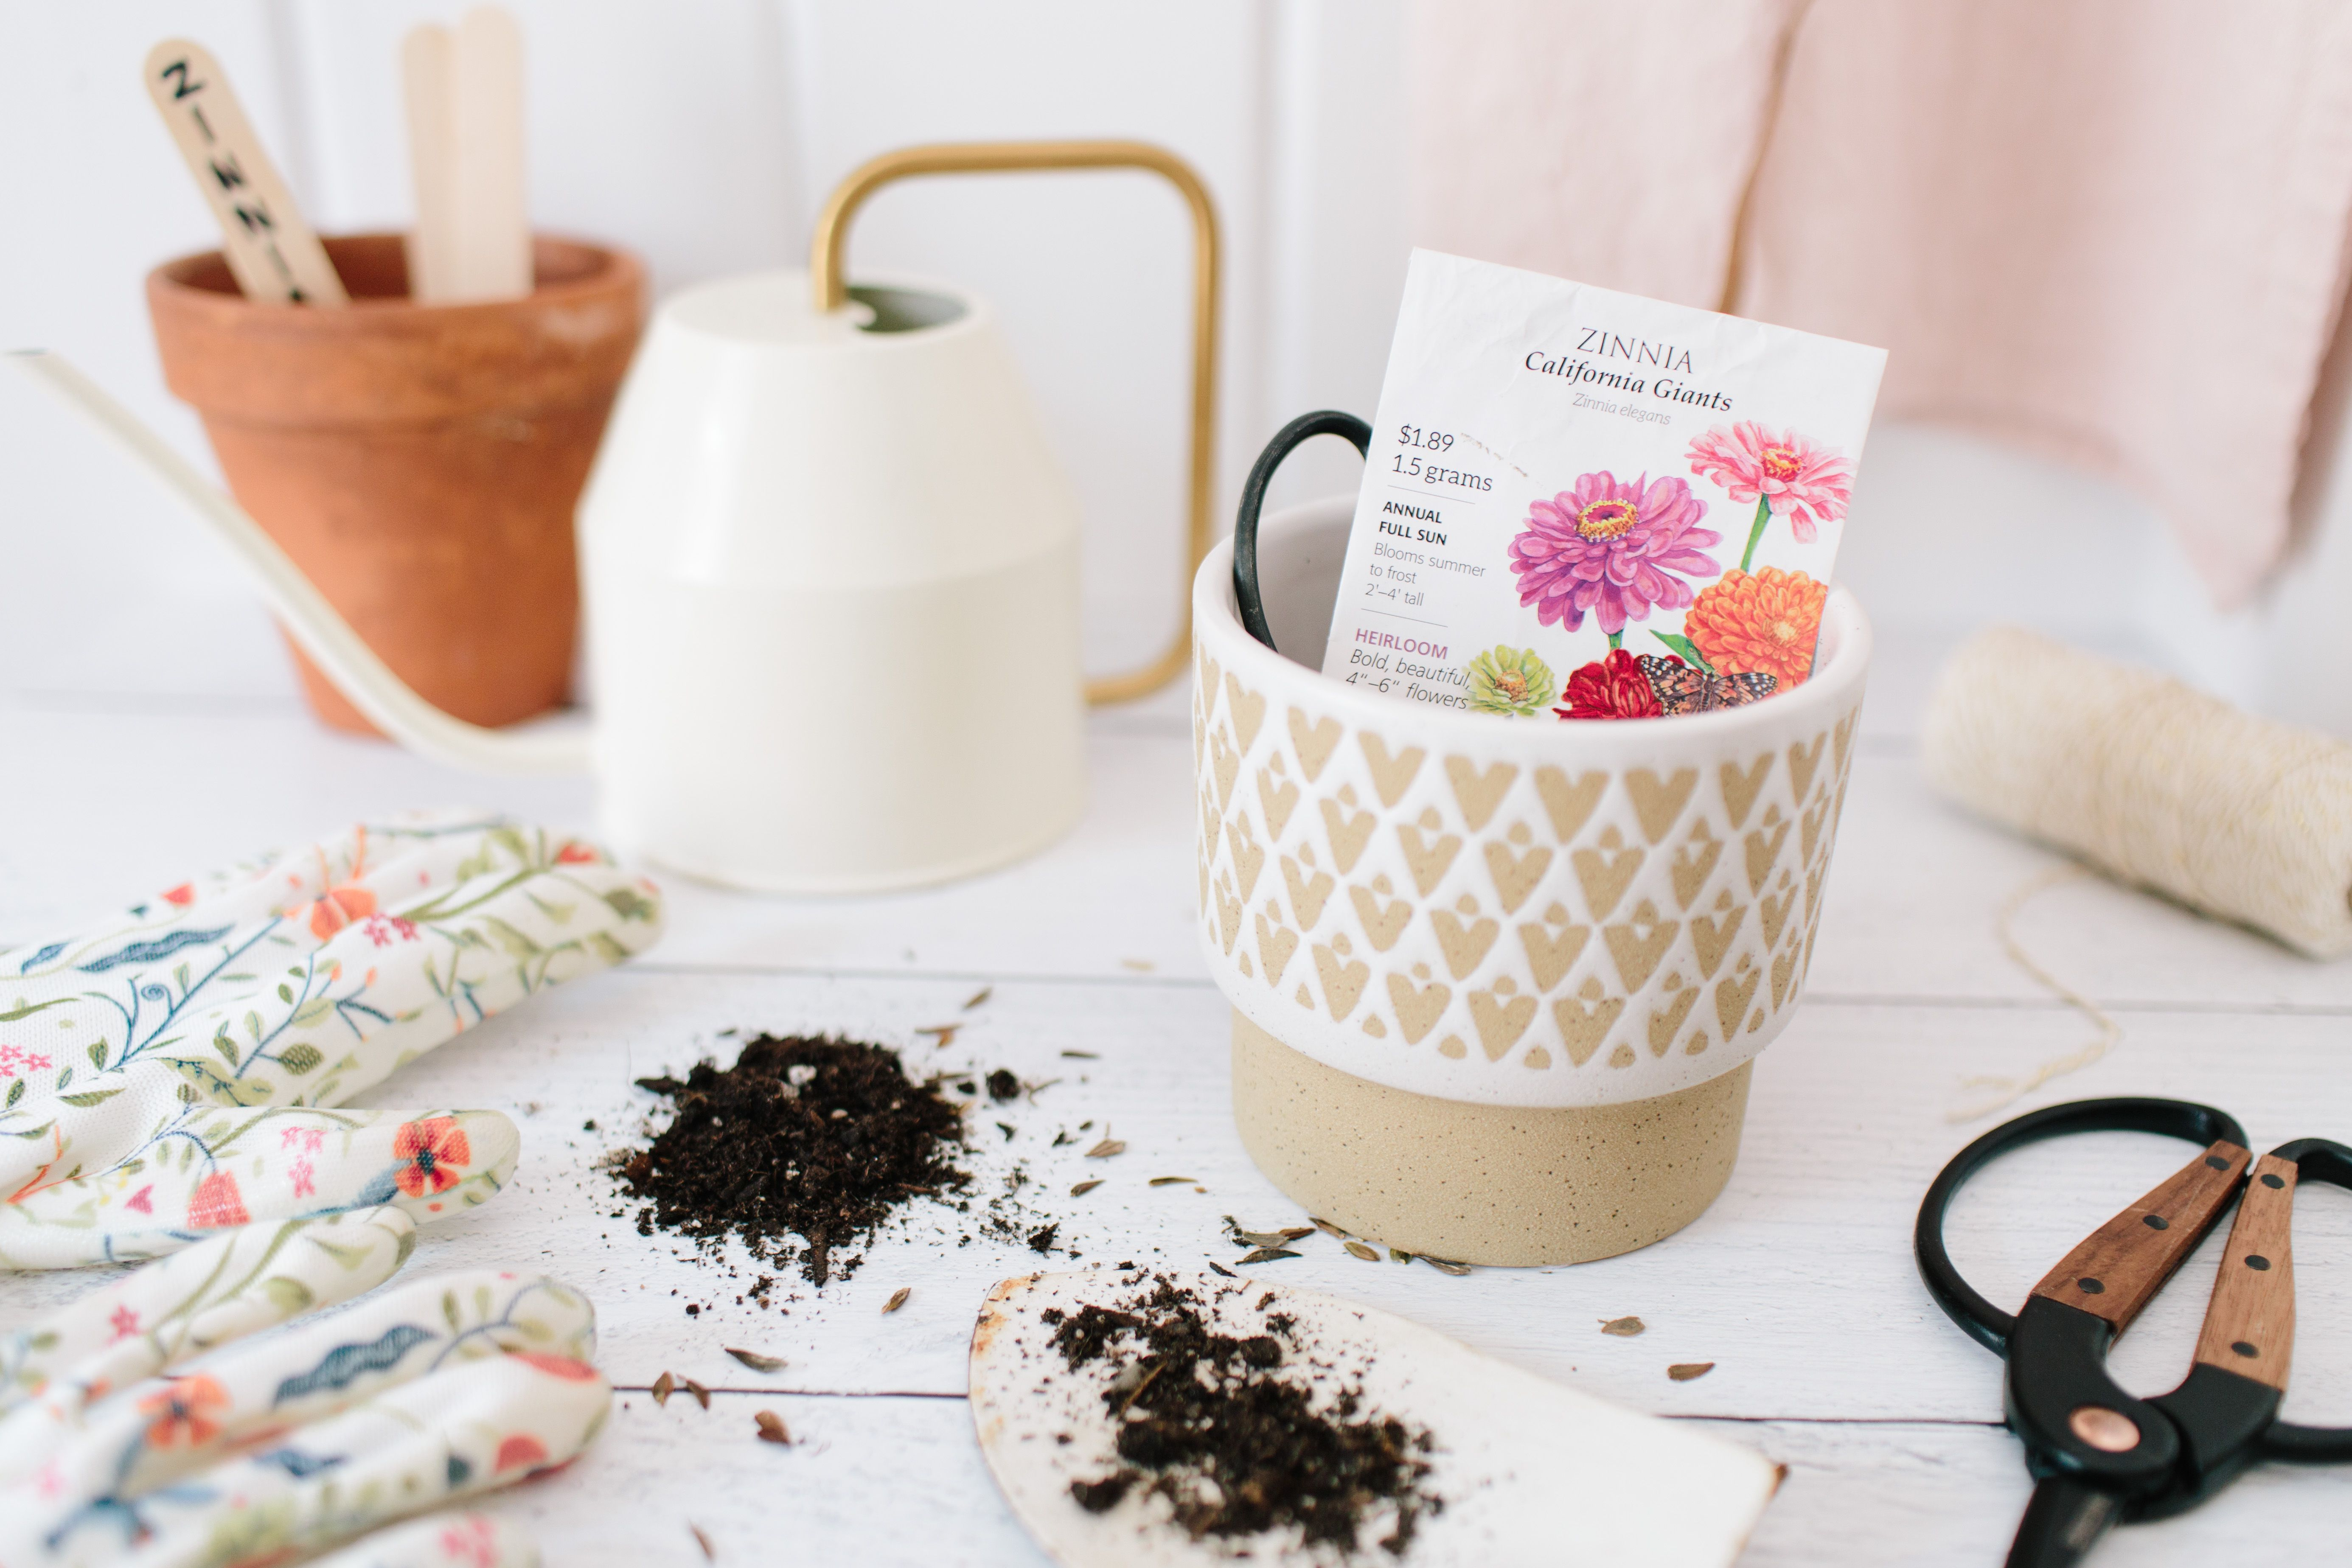 Planting and Growing Zinnia Seeds